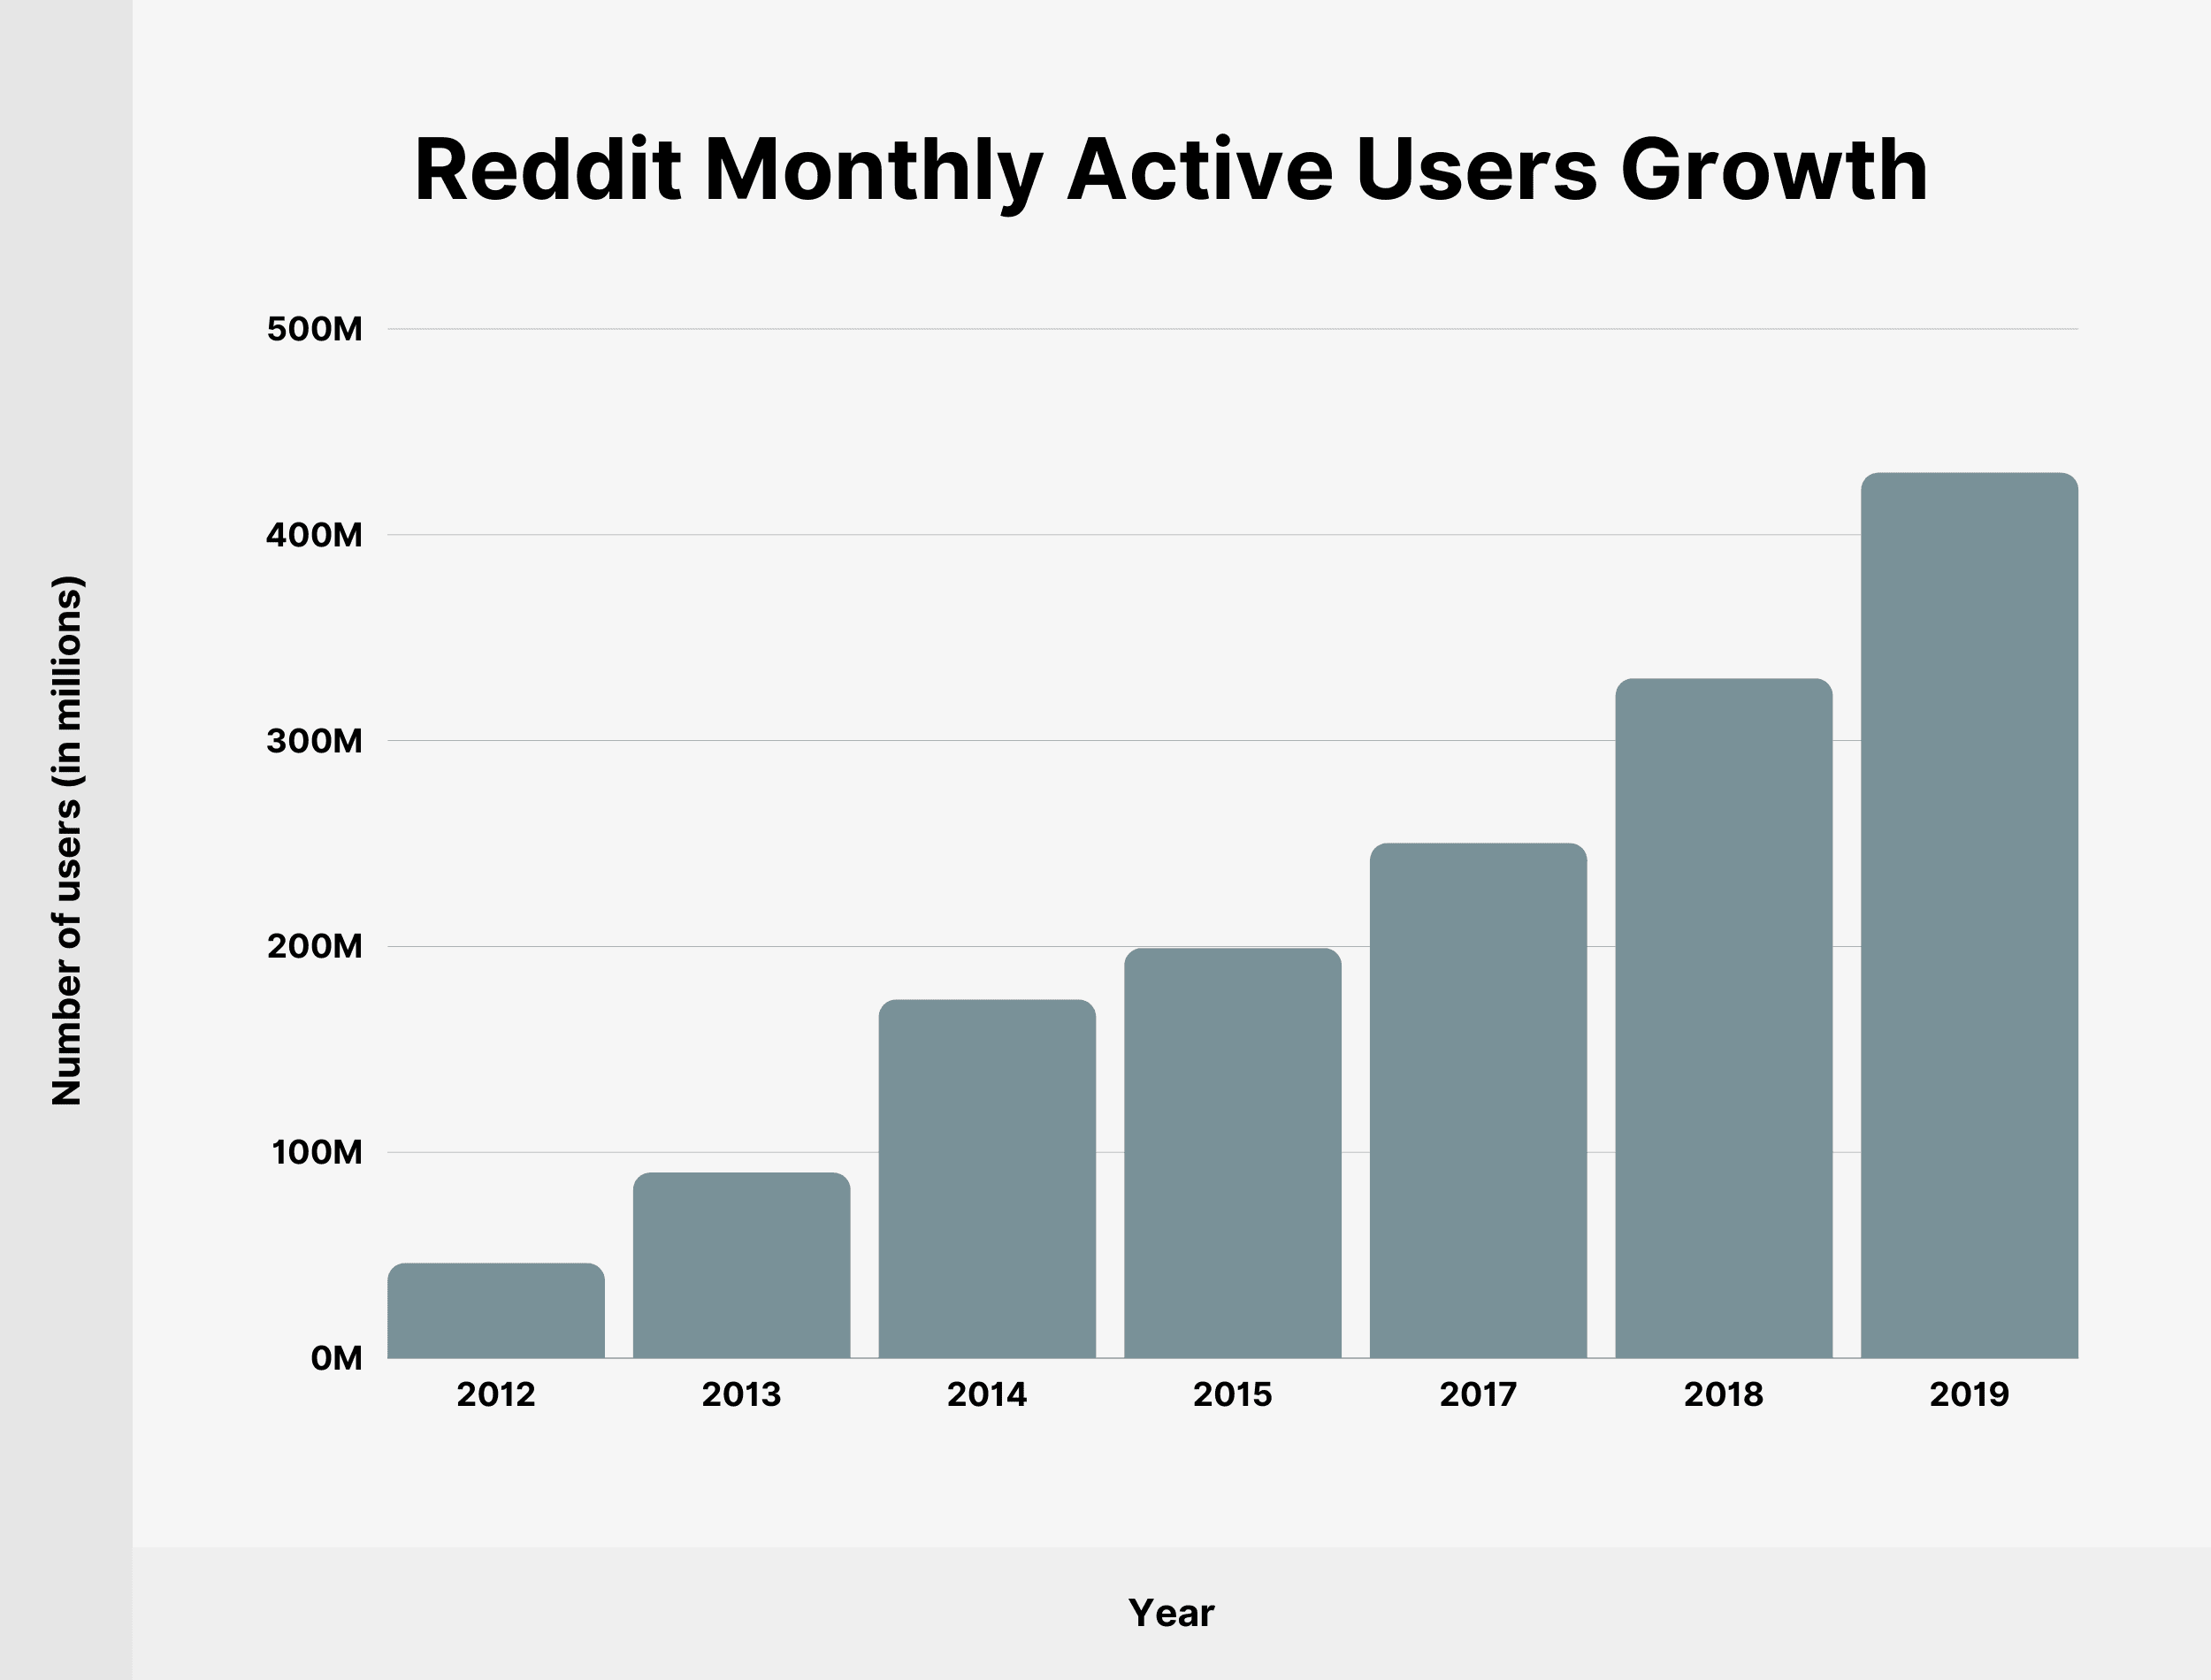 Reddit Monthly Active Users Growth